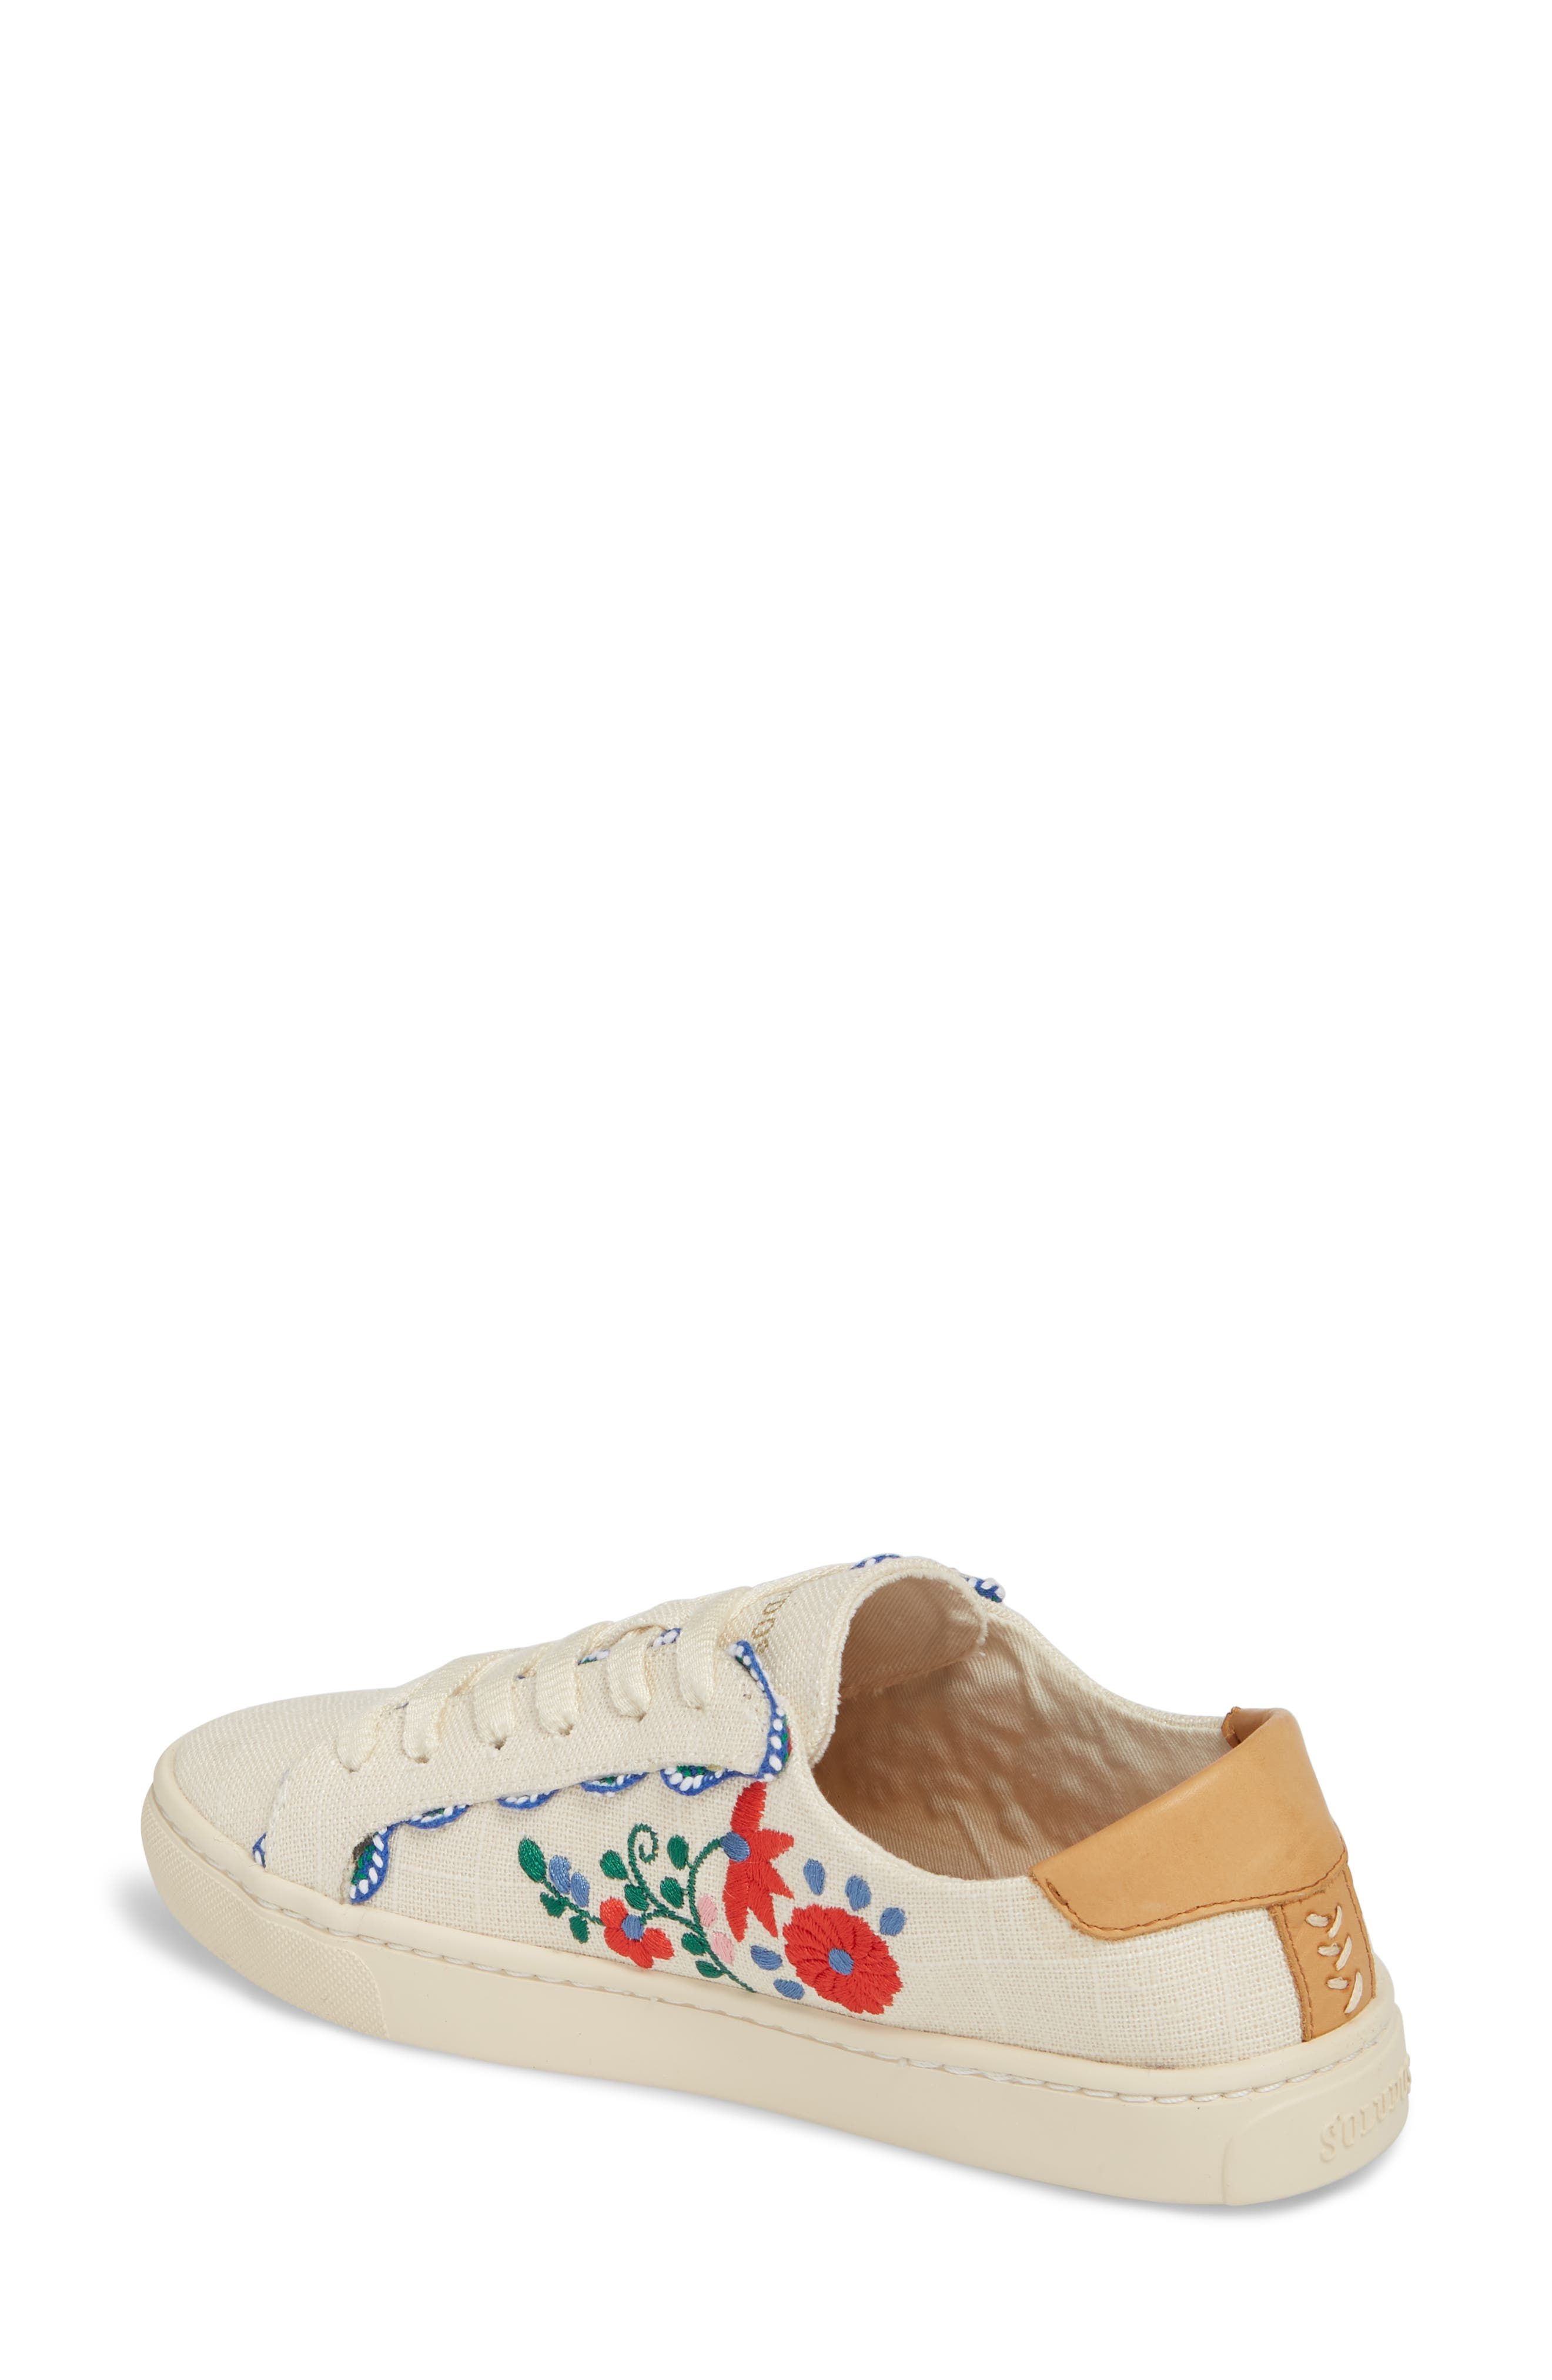 Ibiza Embroidered Sneaker,                             Alternate thumbnail 2, color,                             680